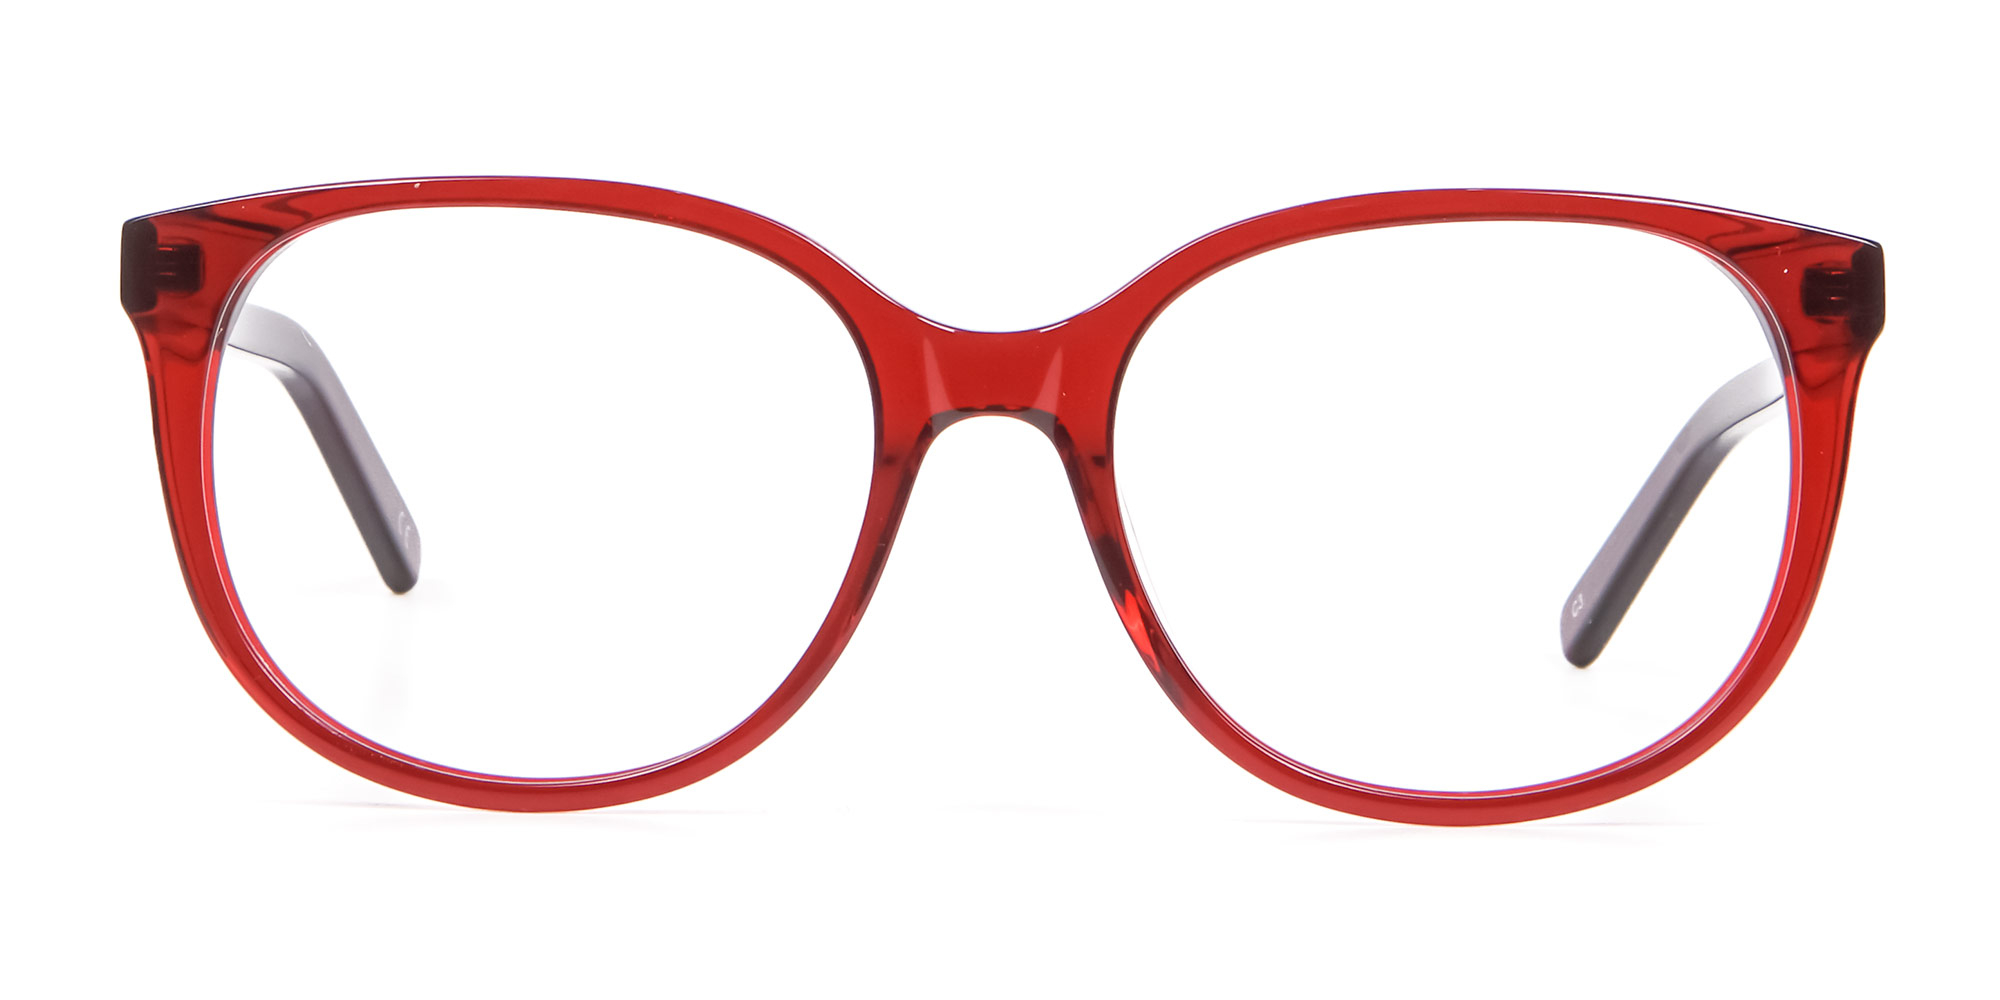 Round Cat Eye Glasses in Cherry Red